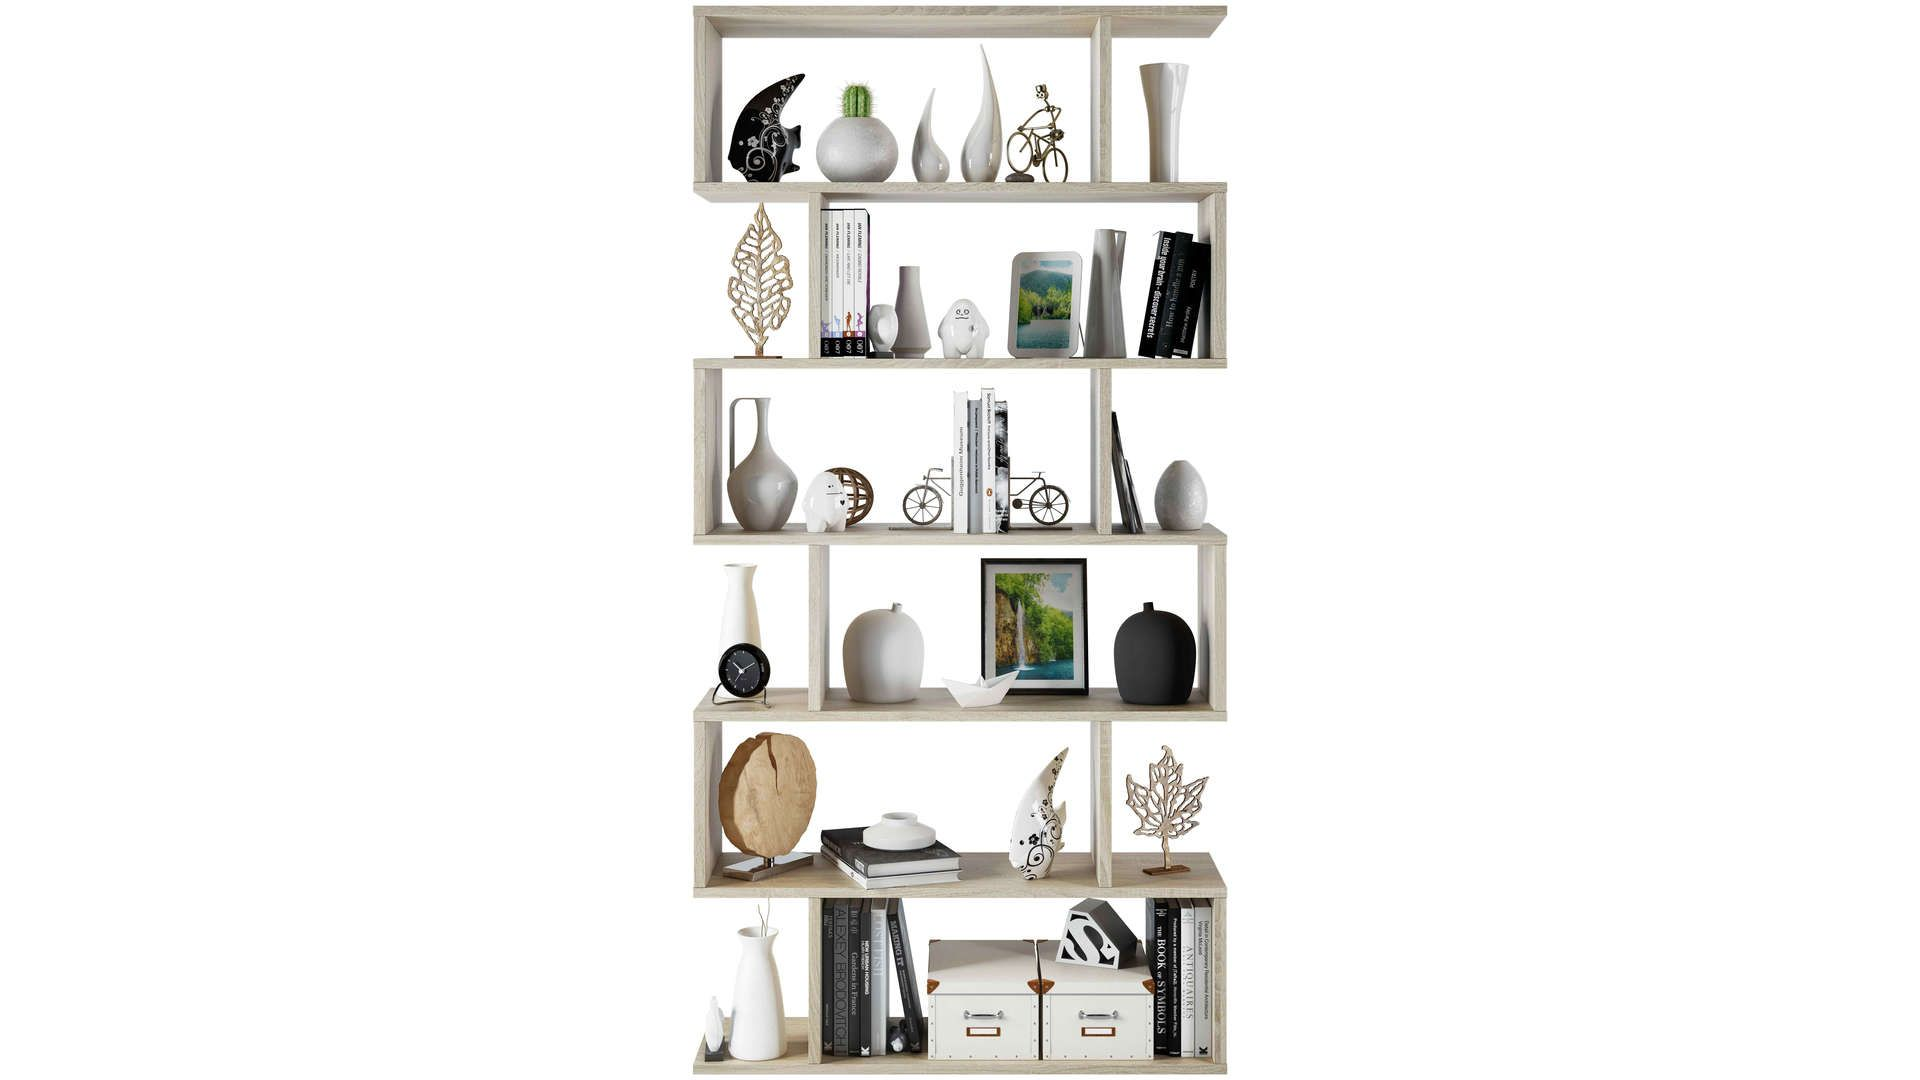 Bibliotheque 6 Cases Athena Case De Rangement Meuble Rangement Etagere Murale Design